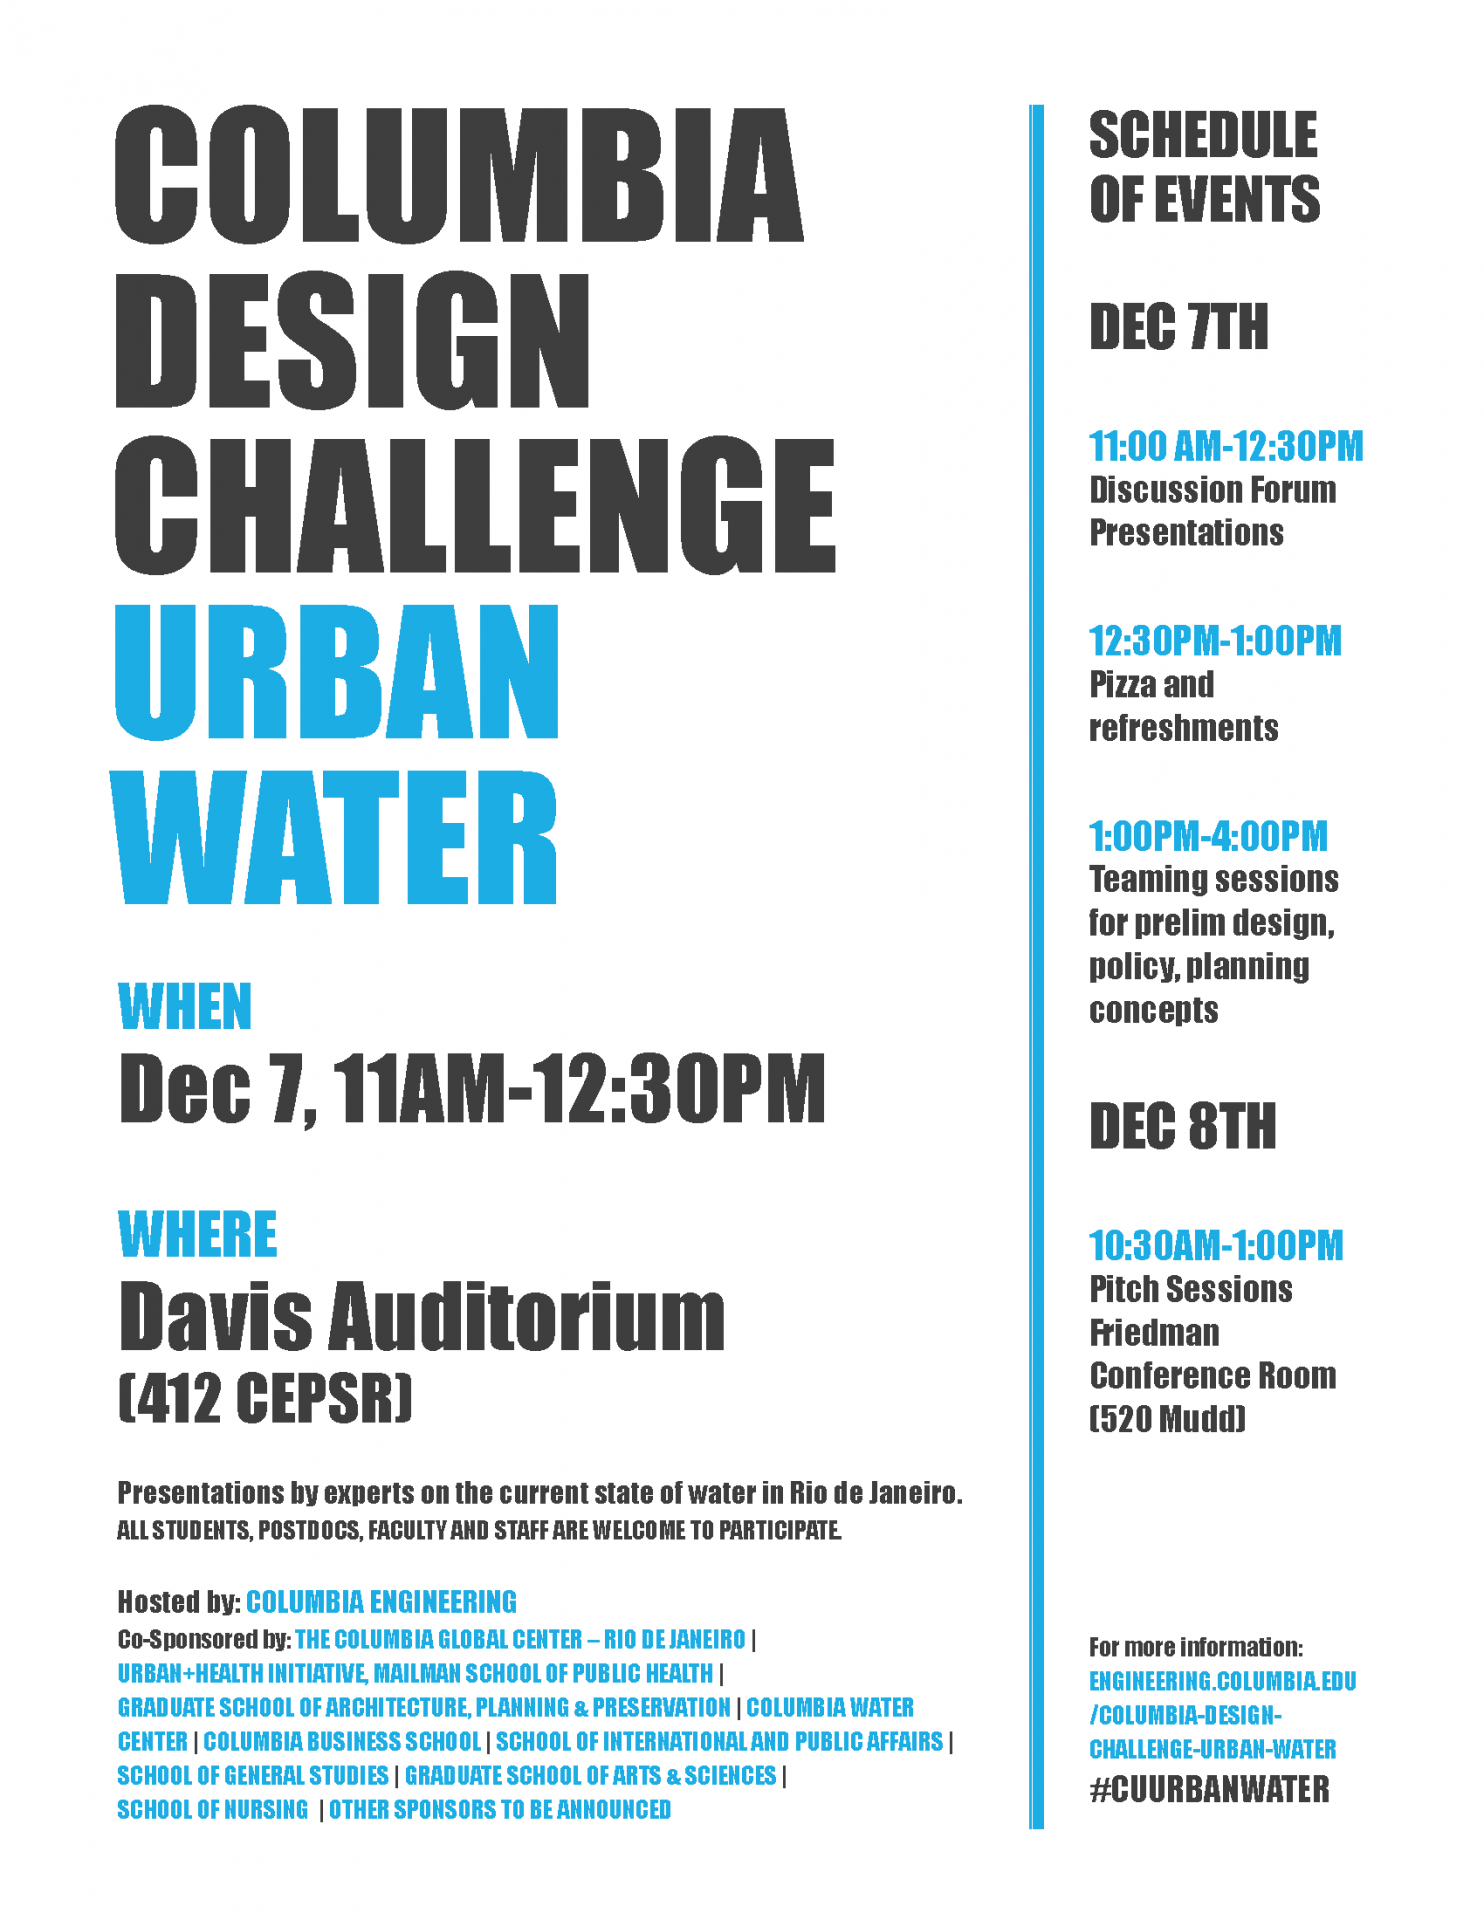 Columbia Design Challenge program schedule